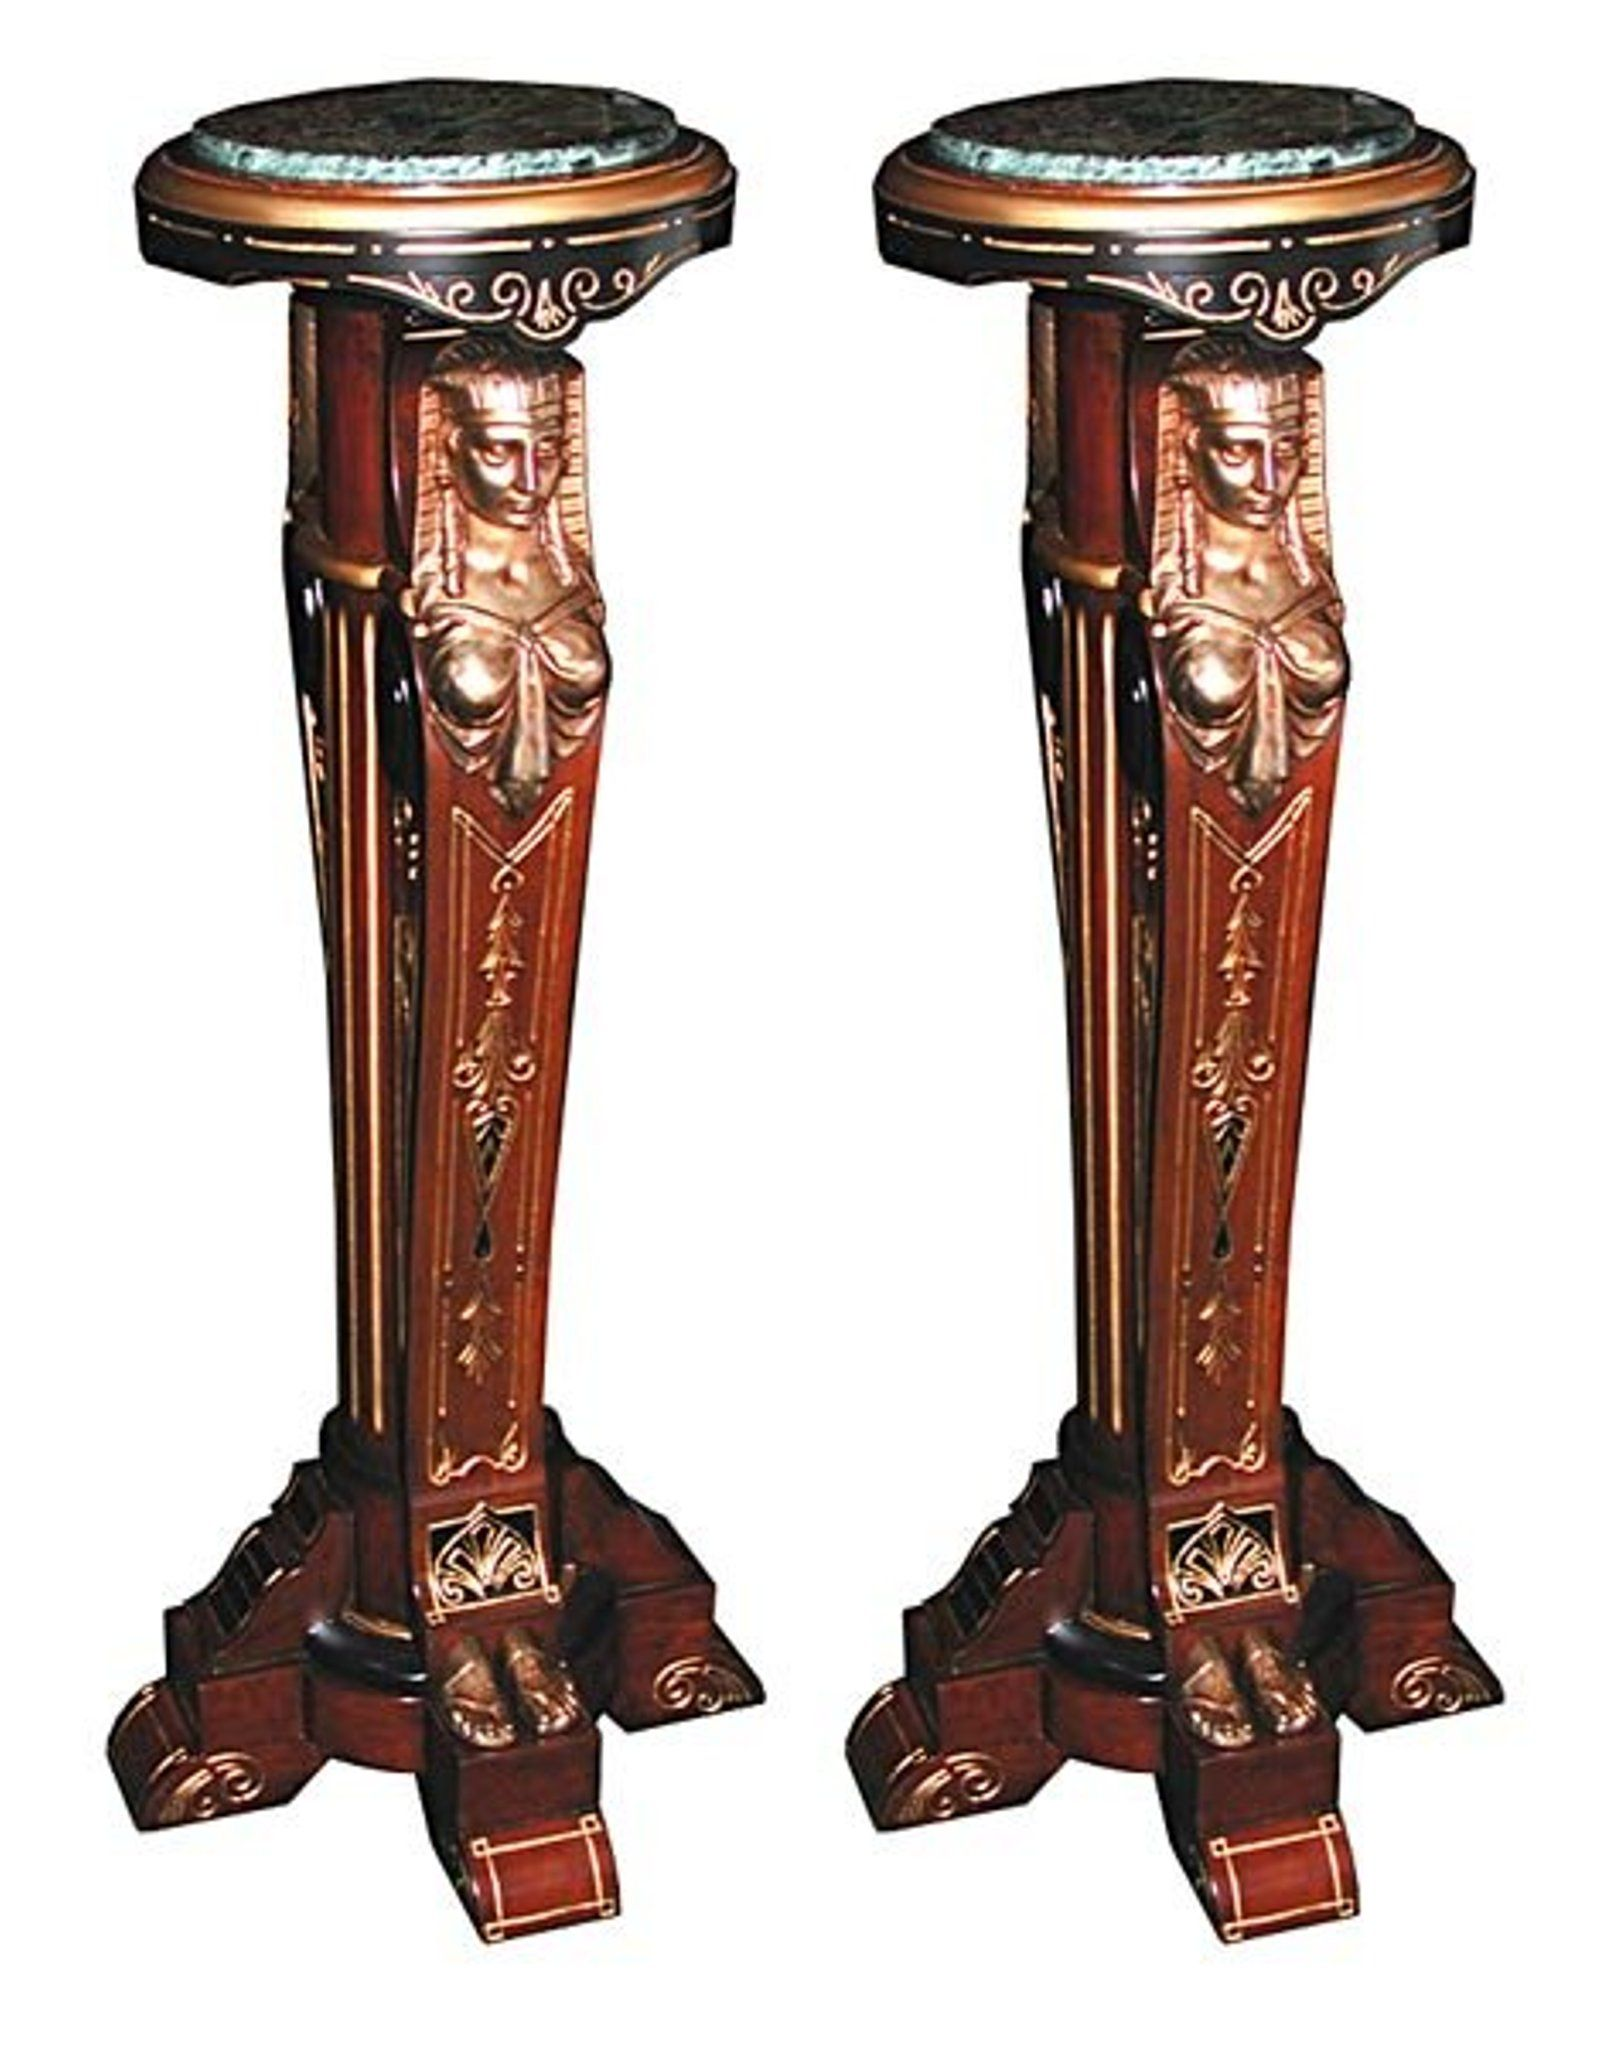 5430 Beautiful 19th C Eqyptian Revival Pedestals by Po